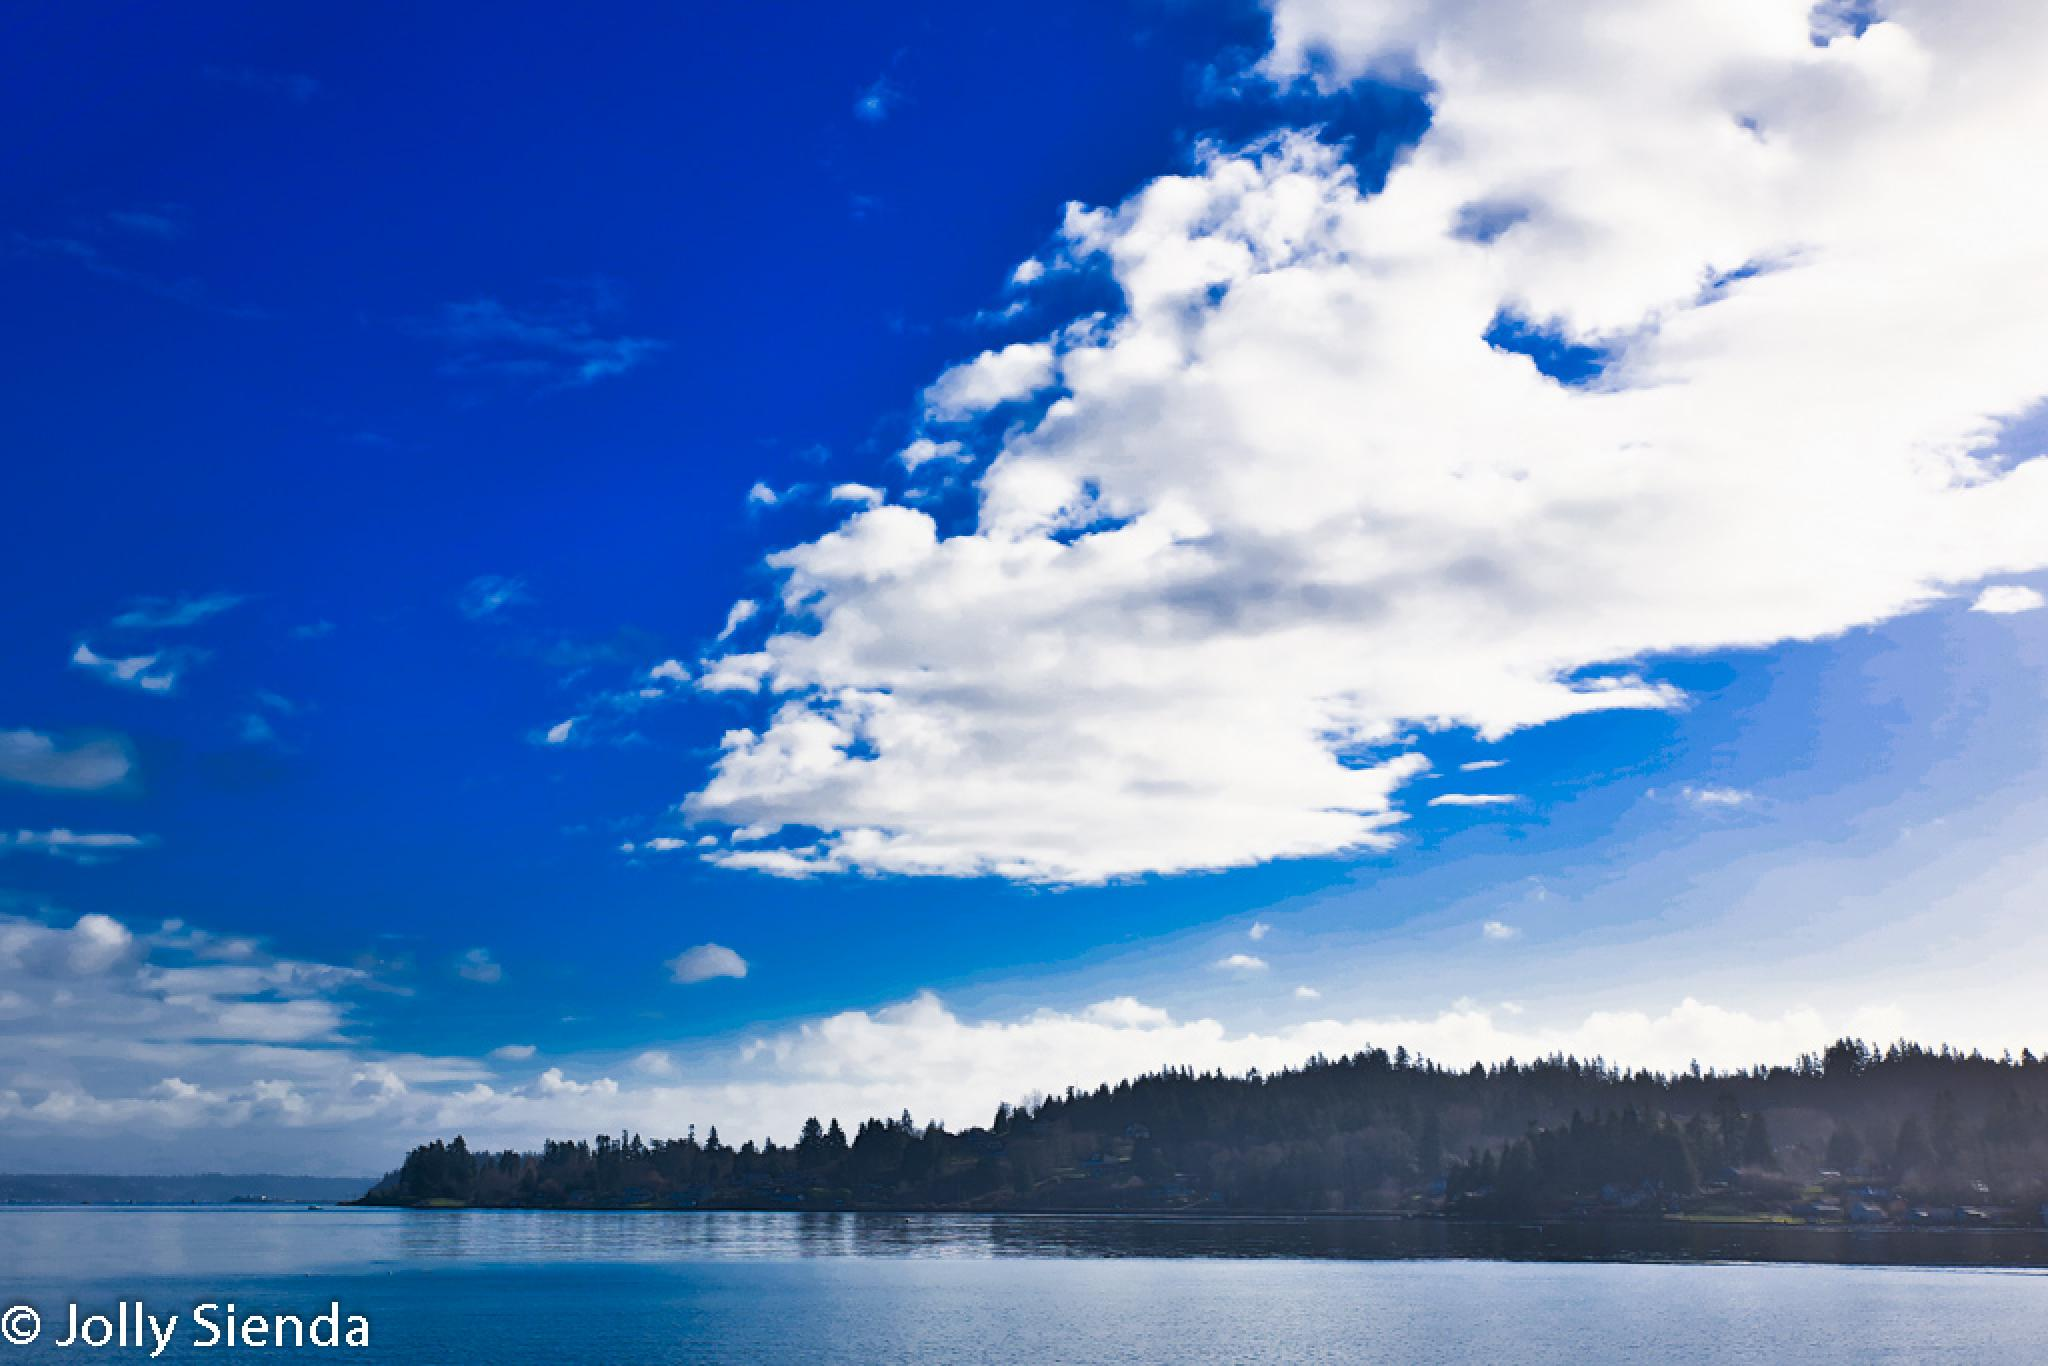 The deep blue sky over Puget Sound. by Jolly Sienda